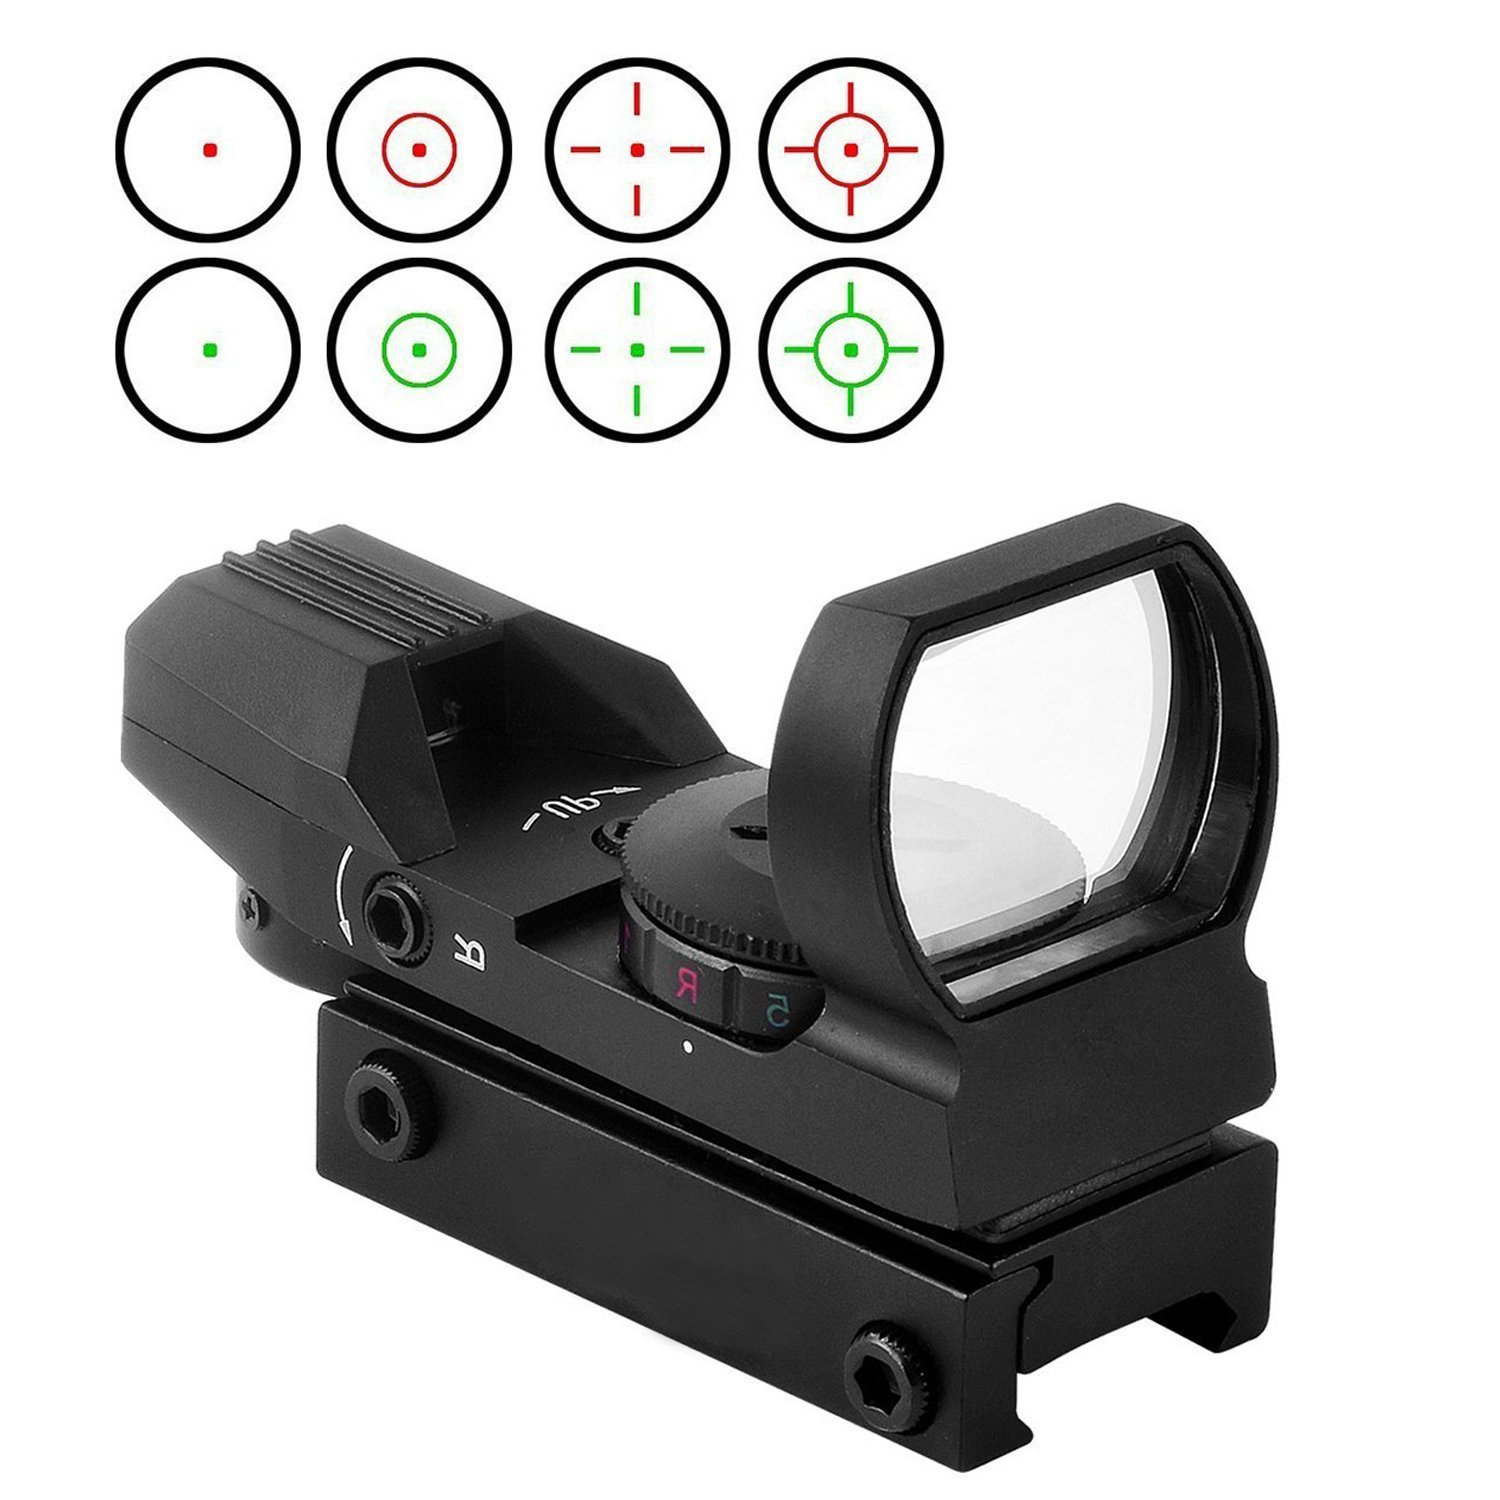 Freehawk®Gun Scope/Gun Sight/Scope Sight/Airsoft Scope/Rifle Scope with Weaver/Picatinny Rial Mount, Tactical 4 Reticle Red Dot Open Reflex Sight Scope for 22mm/11mm Outdoor Shooting